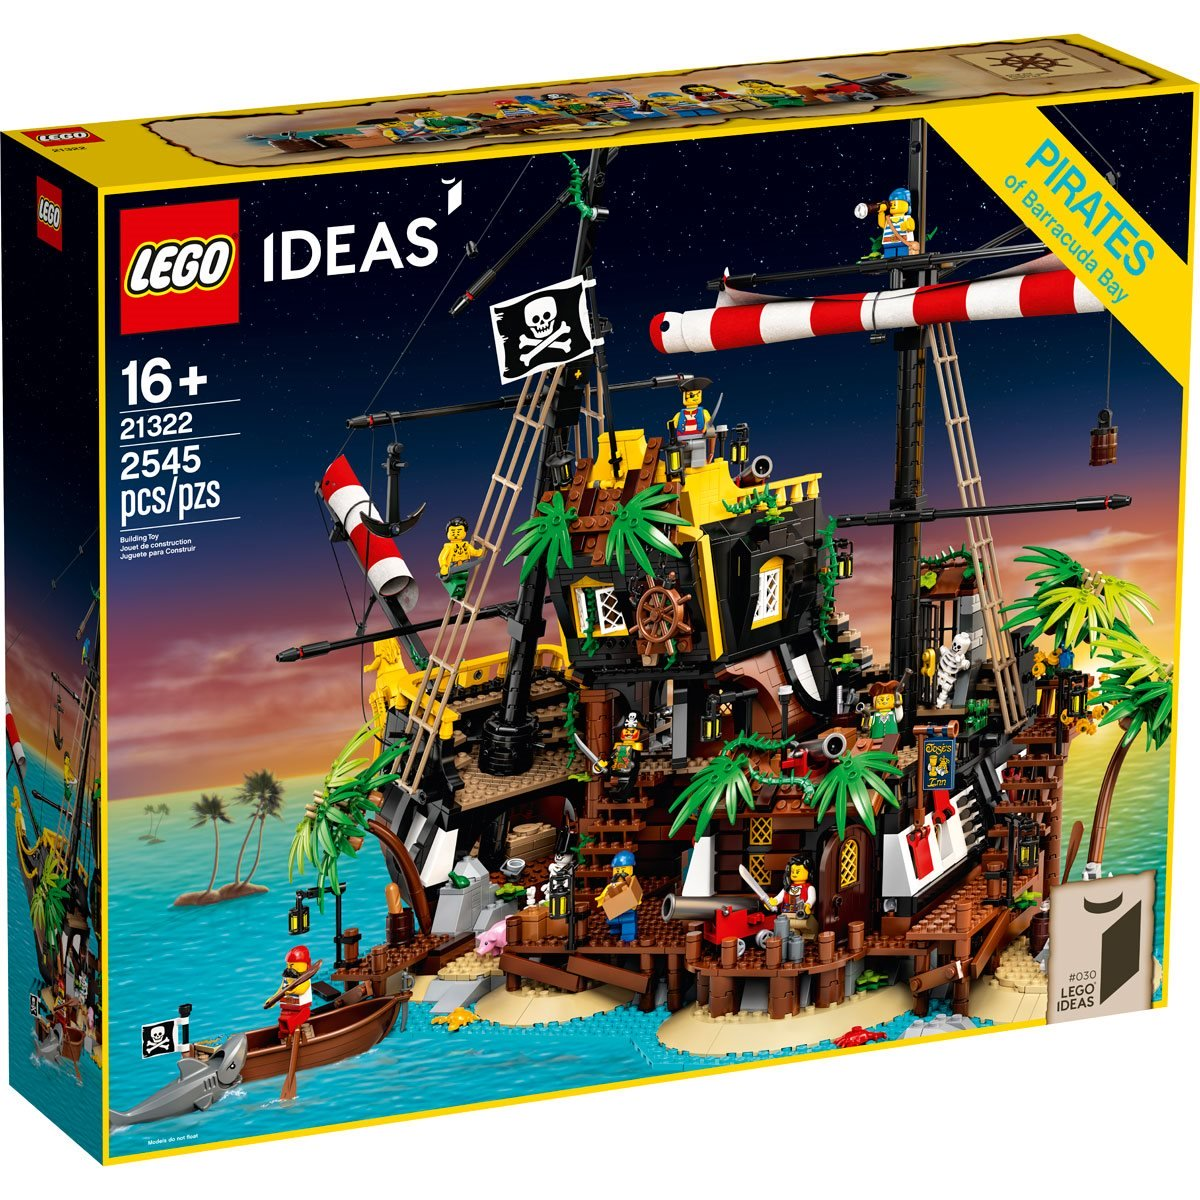 Sail the Seven Seas With the Pirates of Barracuda Bay LEGO Set